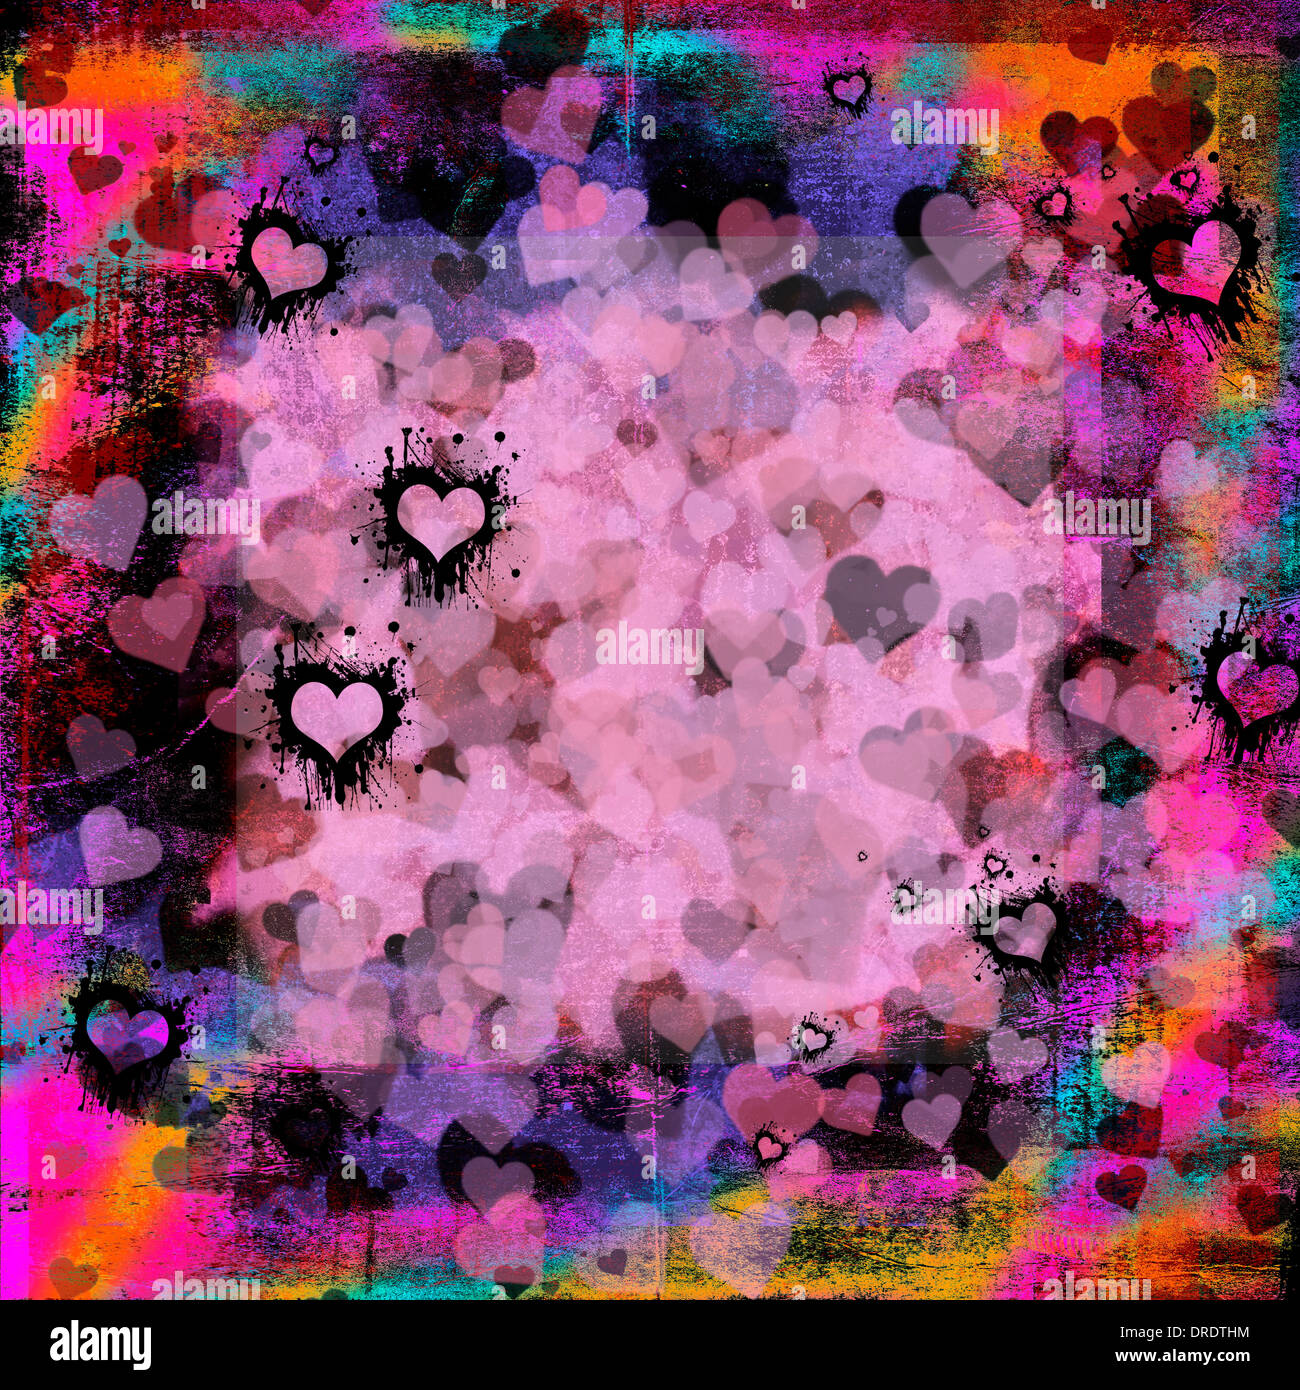 valentines-day-dark-moody-passionate-grunge-hearts-abstract-background-DRDTHM.jpg